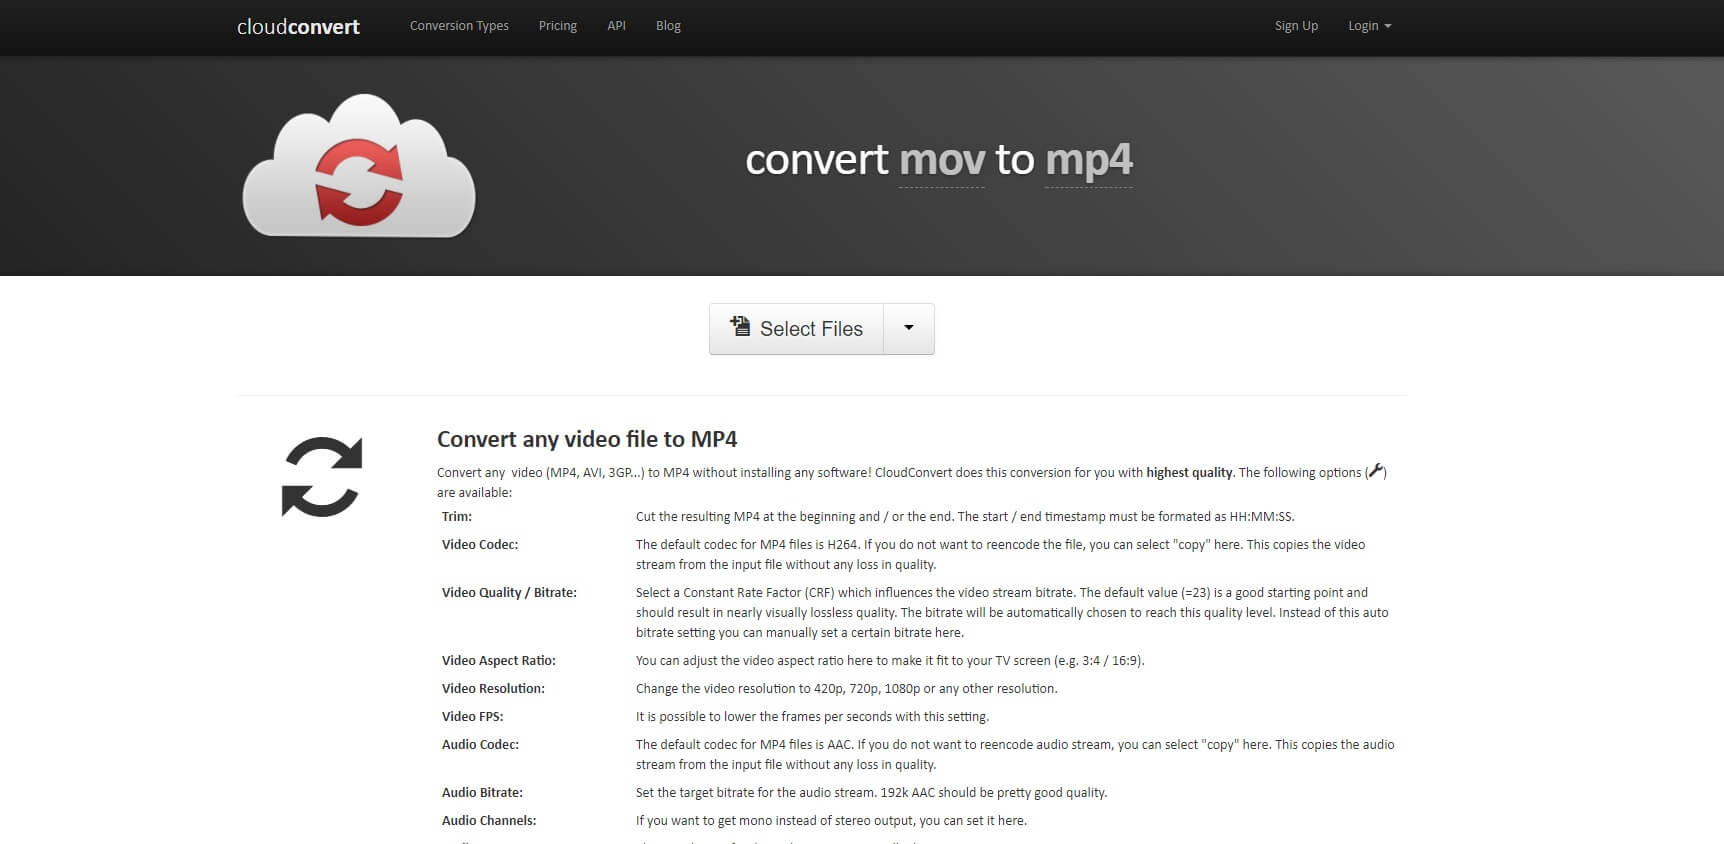 Cloud convert mov to mp4